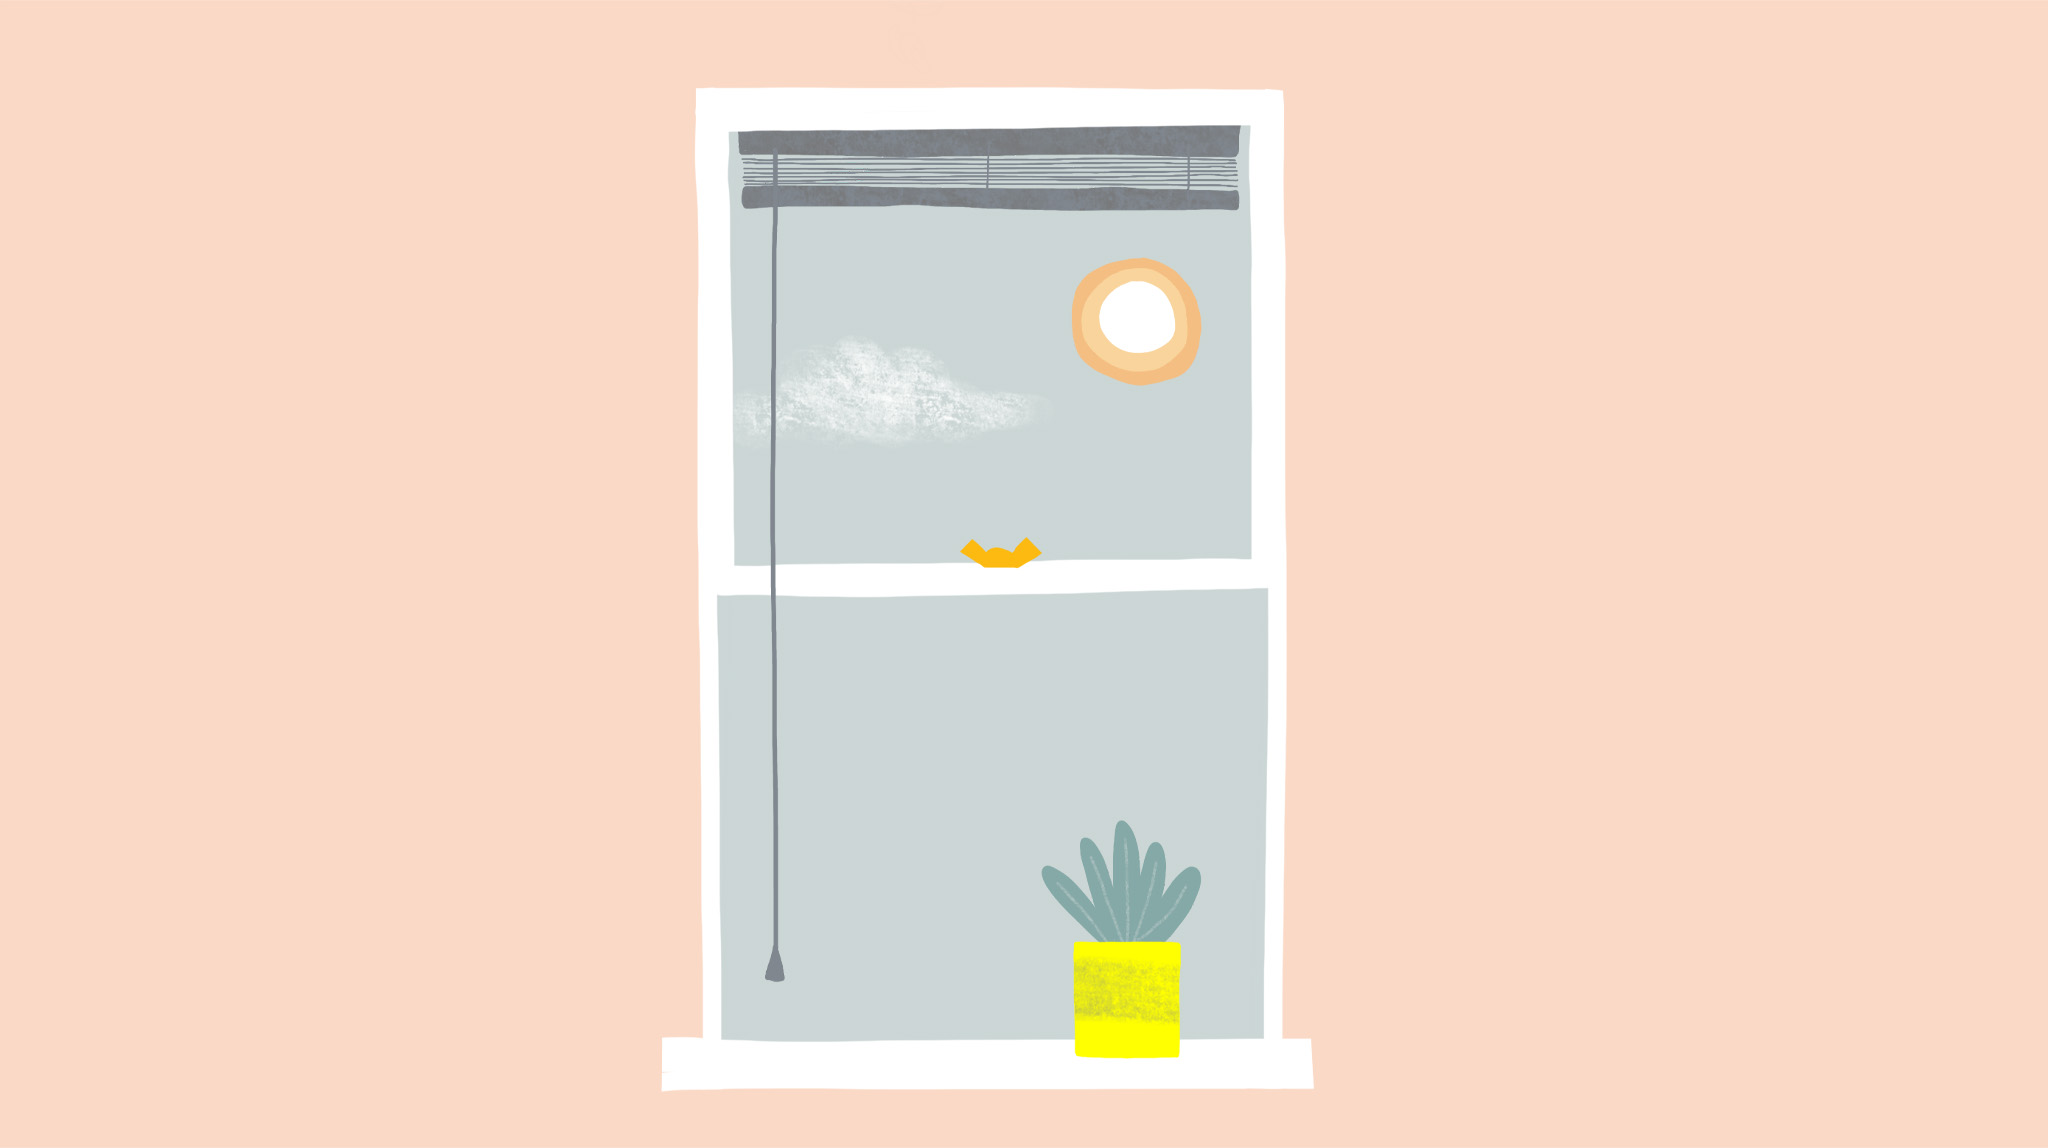 Illustration by MA通信设计 student Charlotte Johnston of a window with a plant